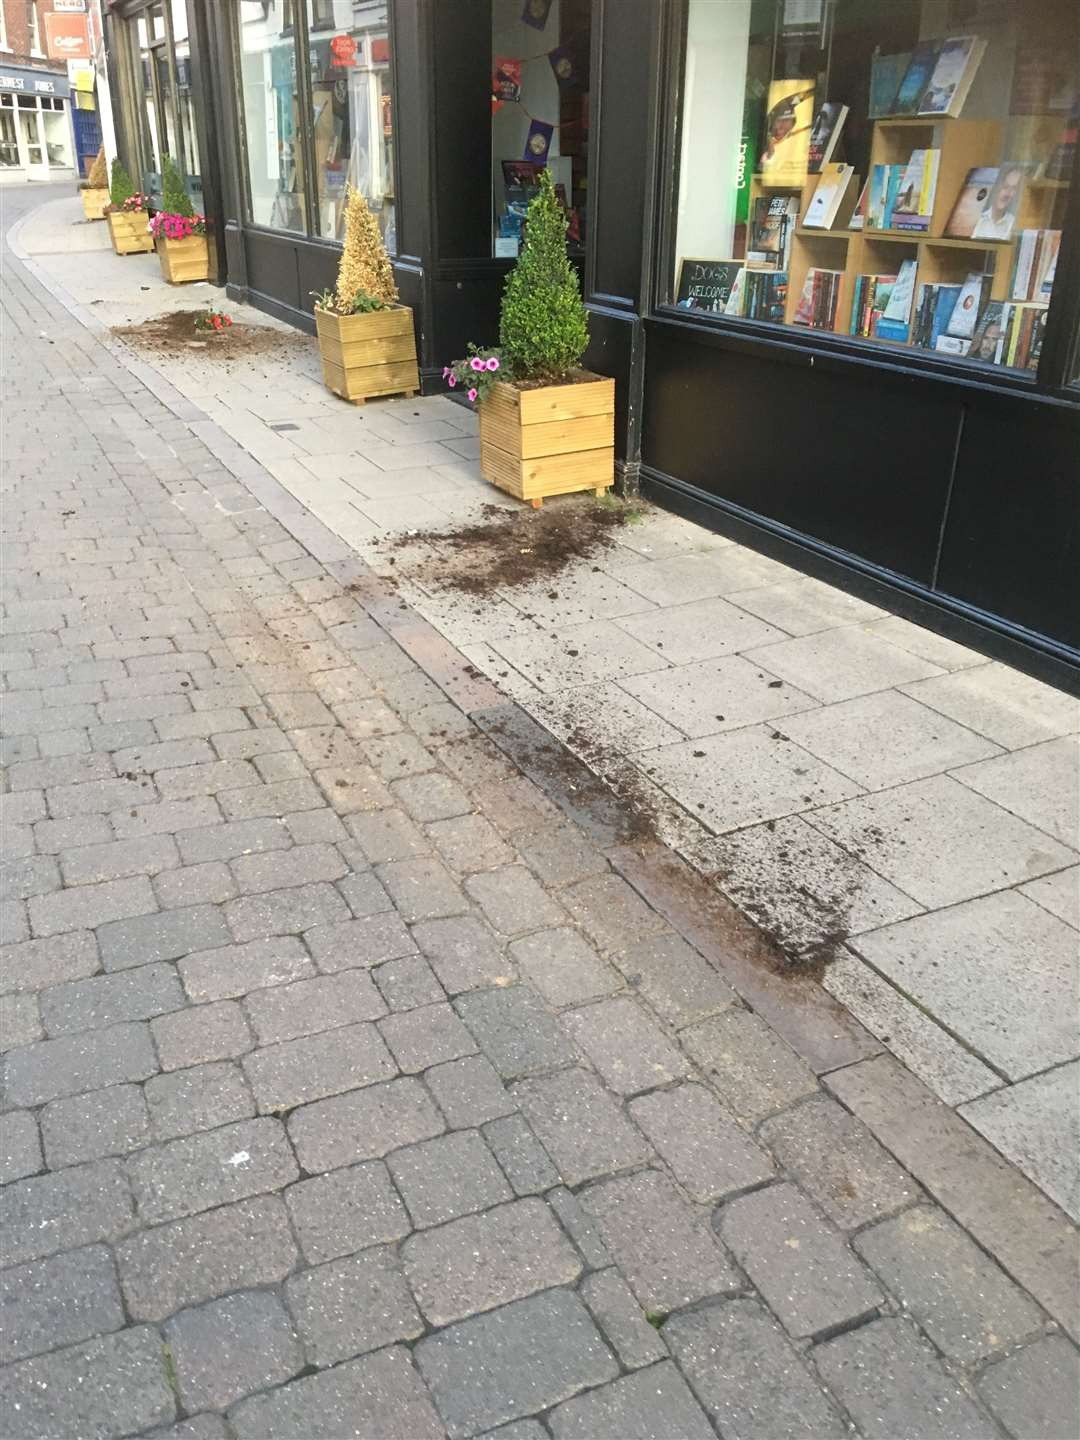 The scene on Friday, August 23 after planters had been vandalised